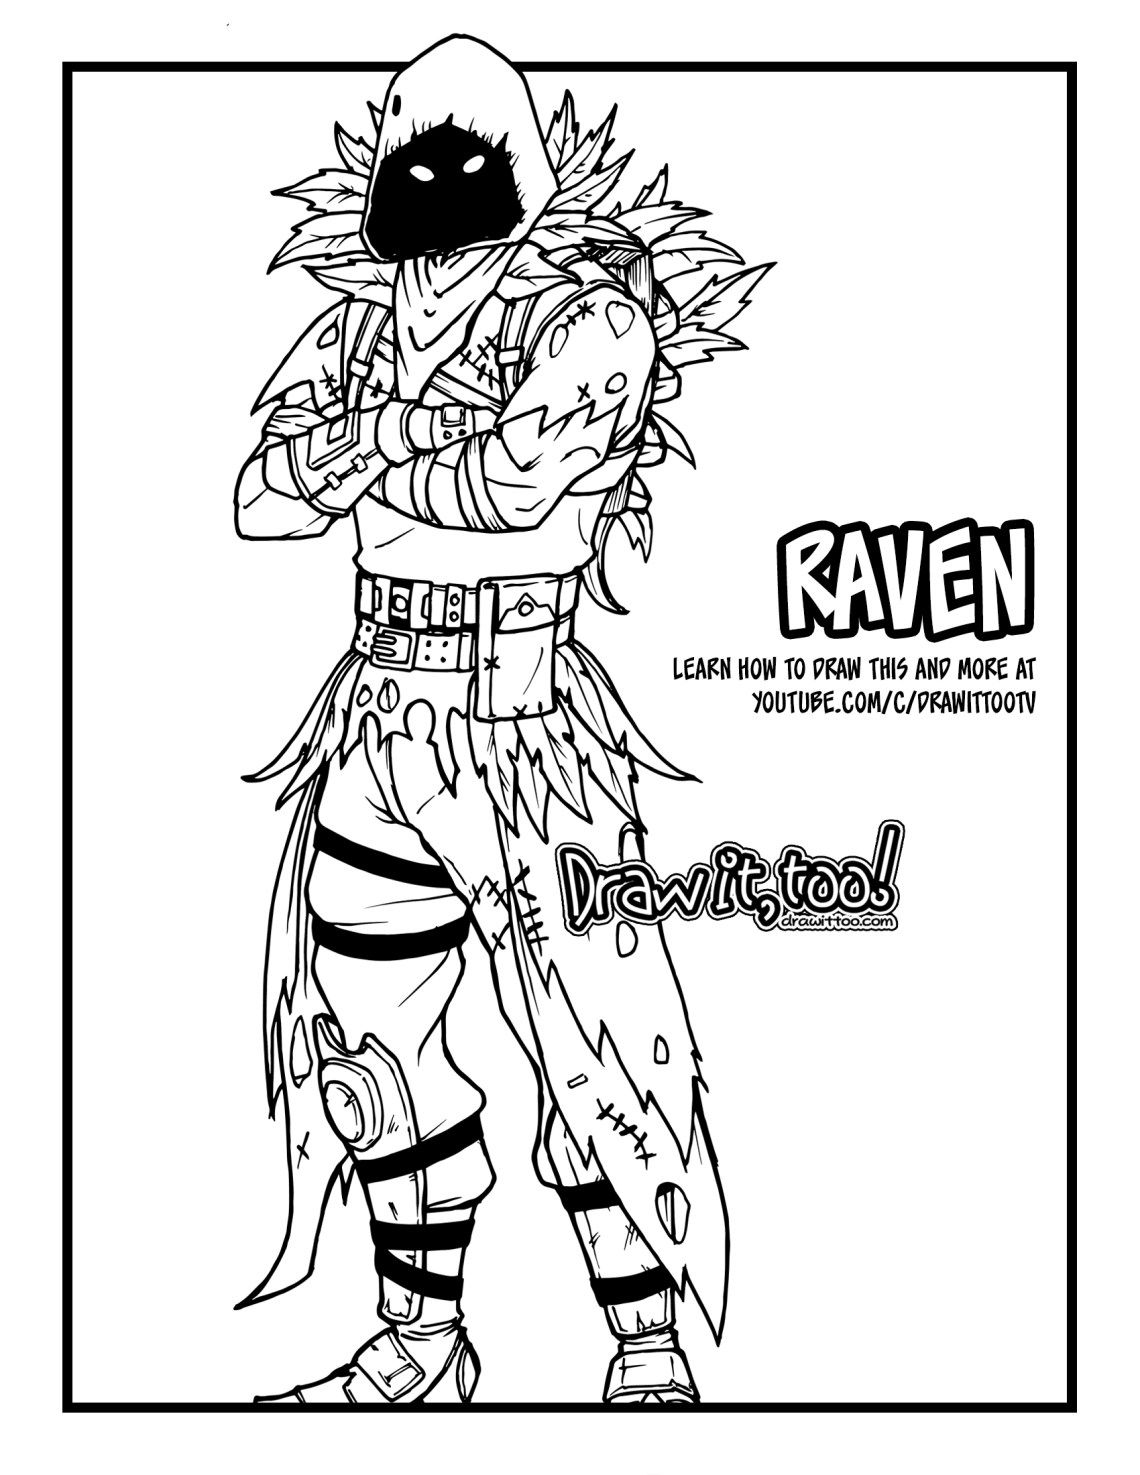 How To Draw Raven Fortnite Battle Royale Drawing Tutorial Coloring Pages Unicorn Coloring Pages Christmas Coloring Pages